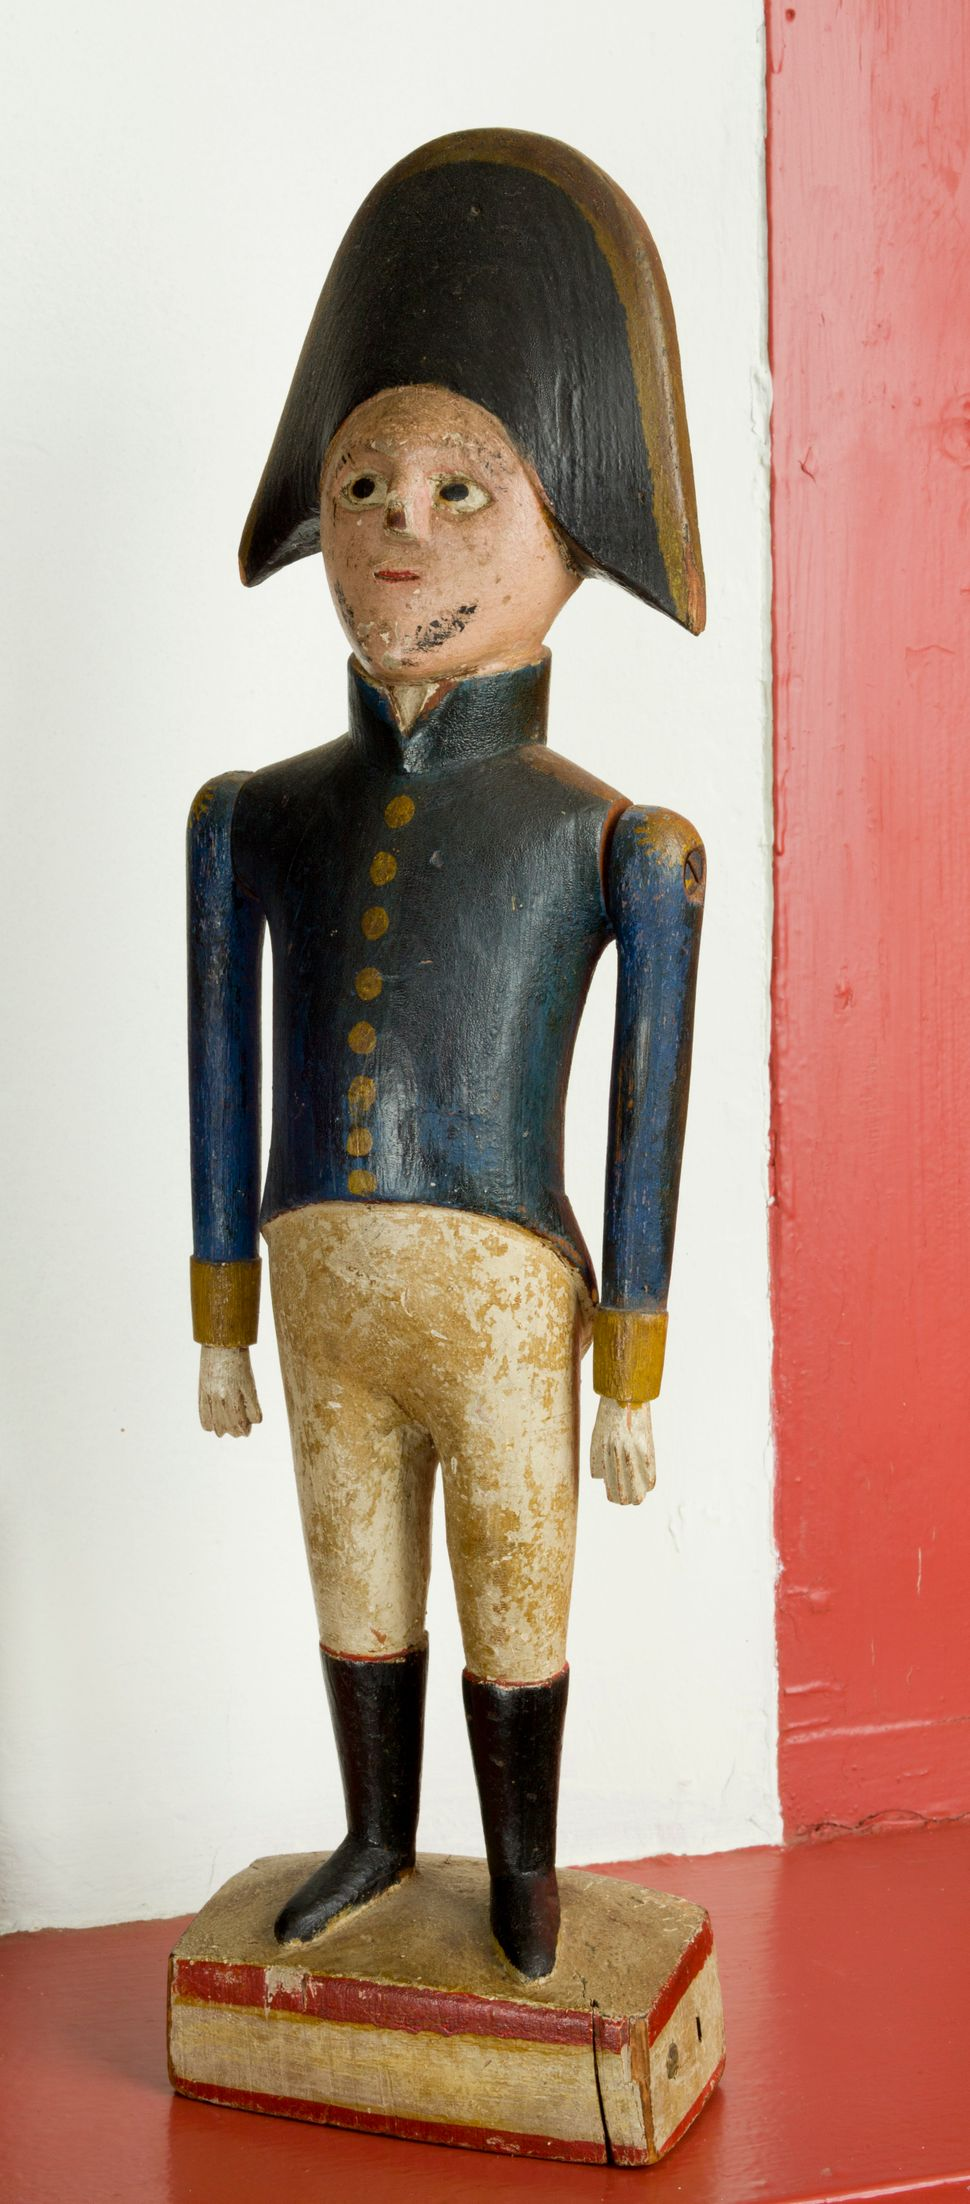 Toy Soldier, 19th century American Image: Courtesy of the Worcester Art Museum